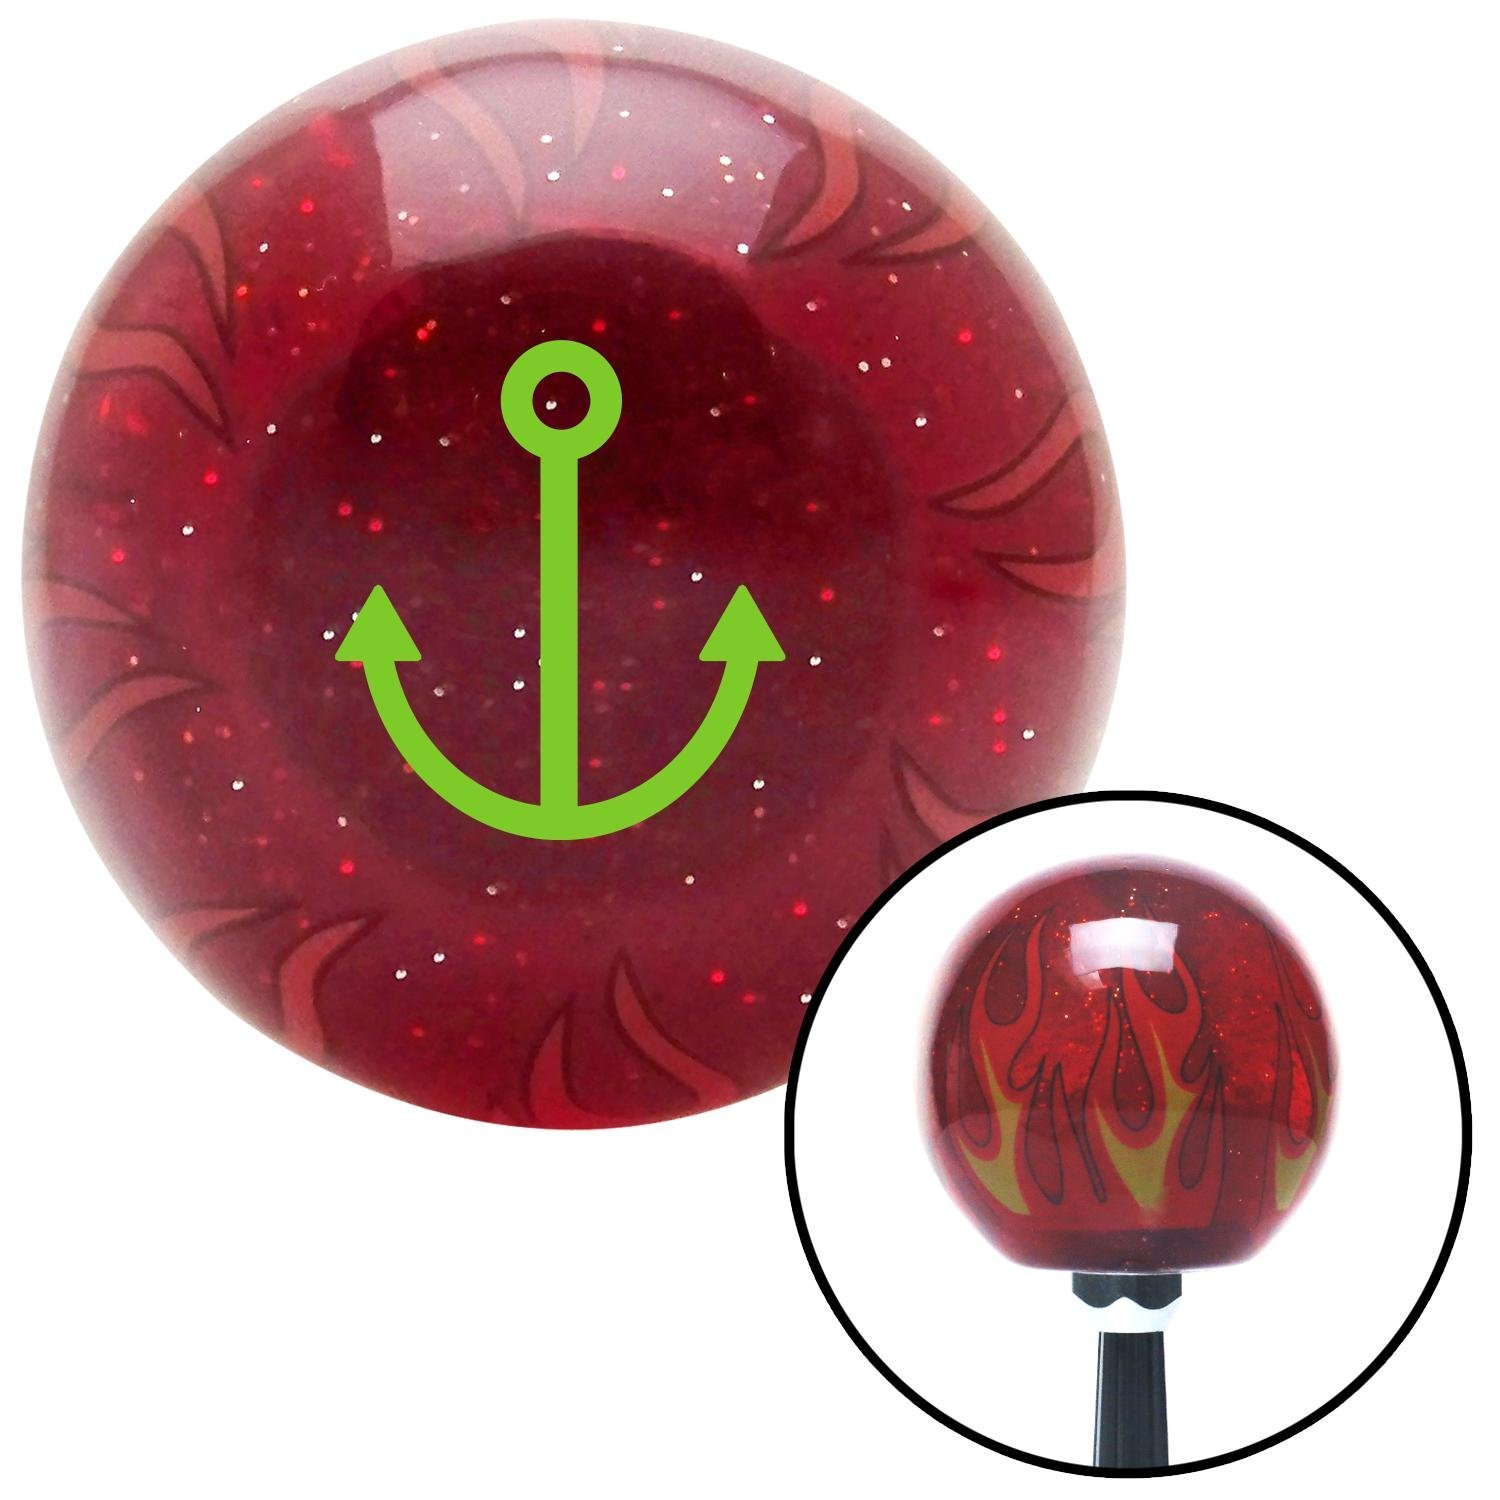 American Shifter 241743 Red Flame Metal Flake Shift Knob with M16 x 1.5 Insert Green Anchor Design